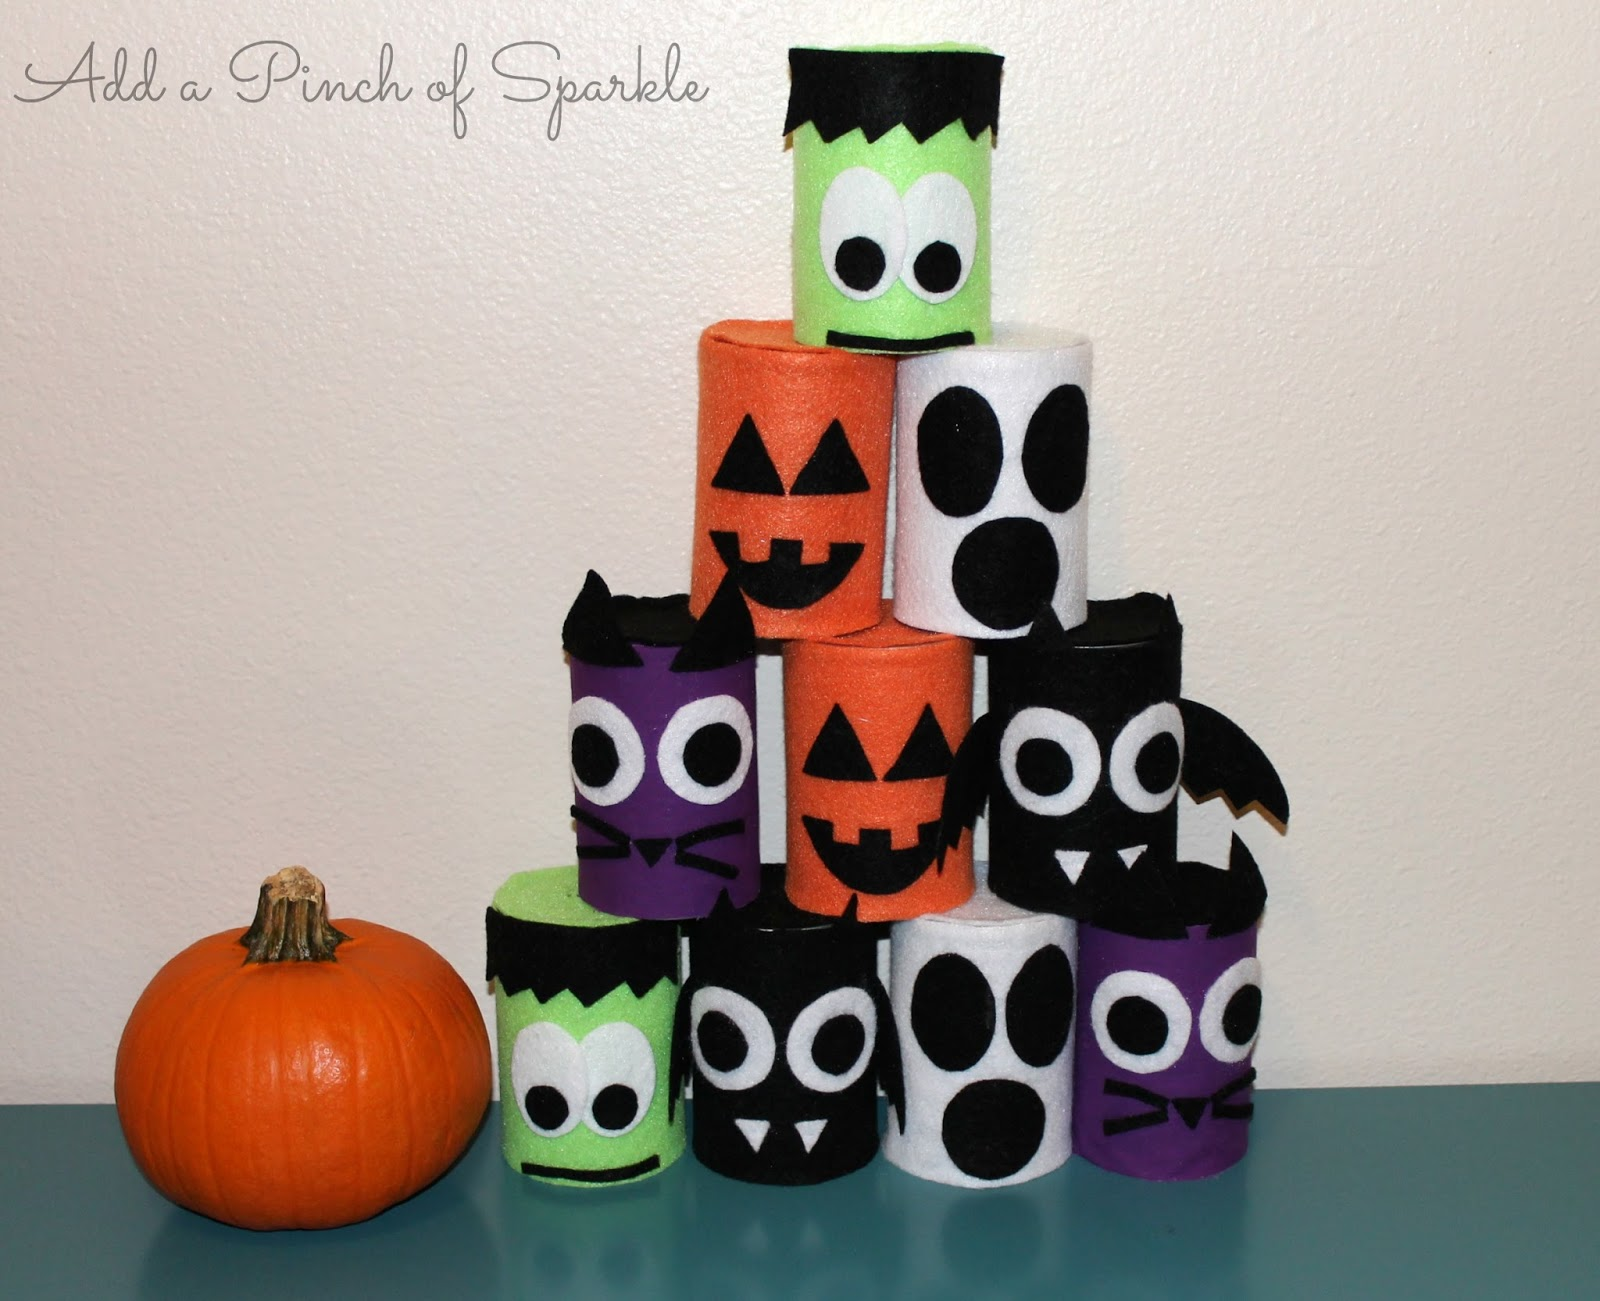 Add A Pinch Of Sparkle: Halloween Pumpkin Bowling